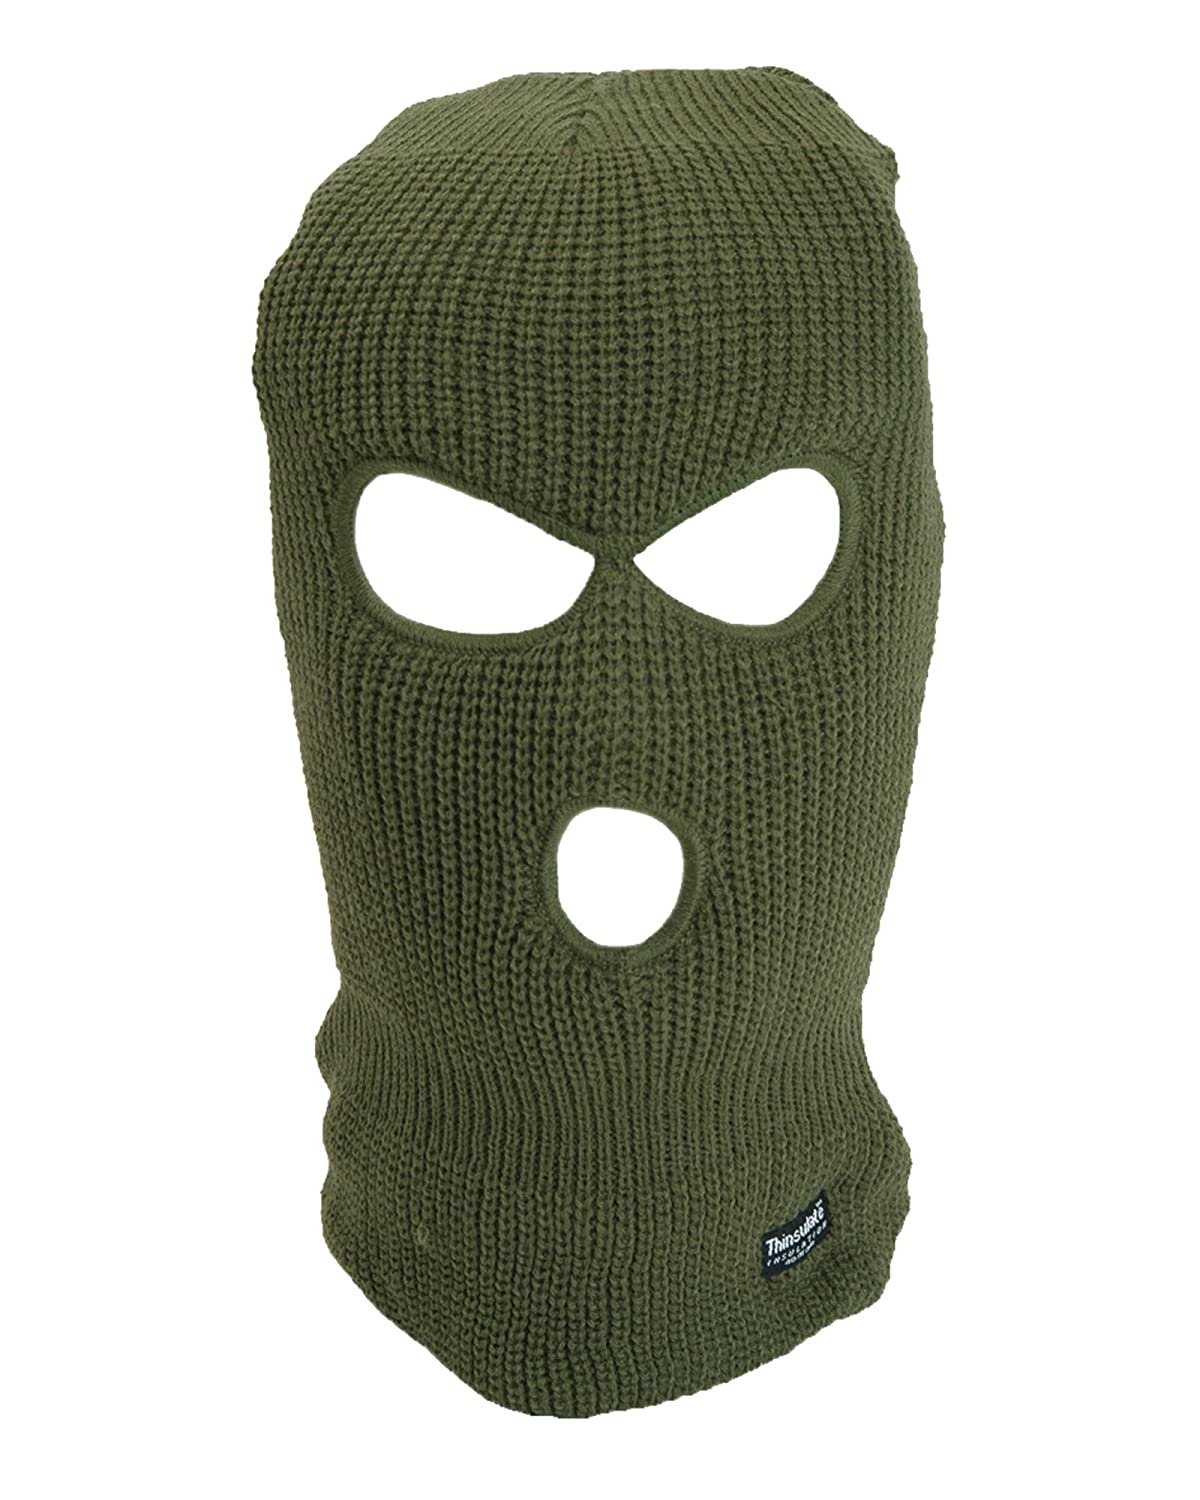 3 Hole Balaclava Winter Warm Thinsulate Knitted Face Mask